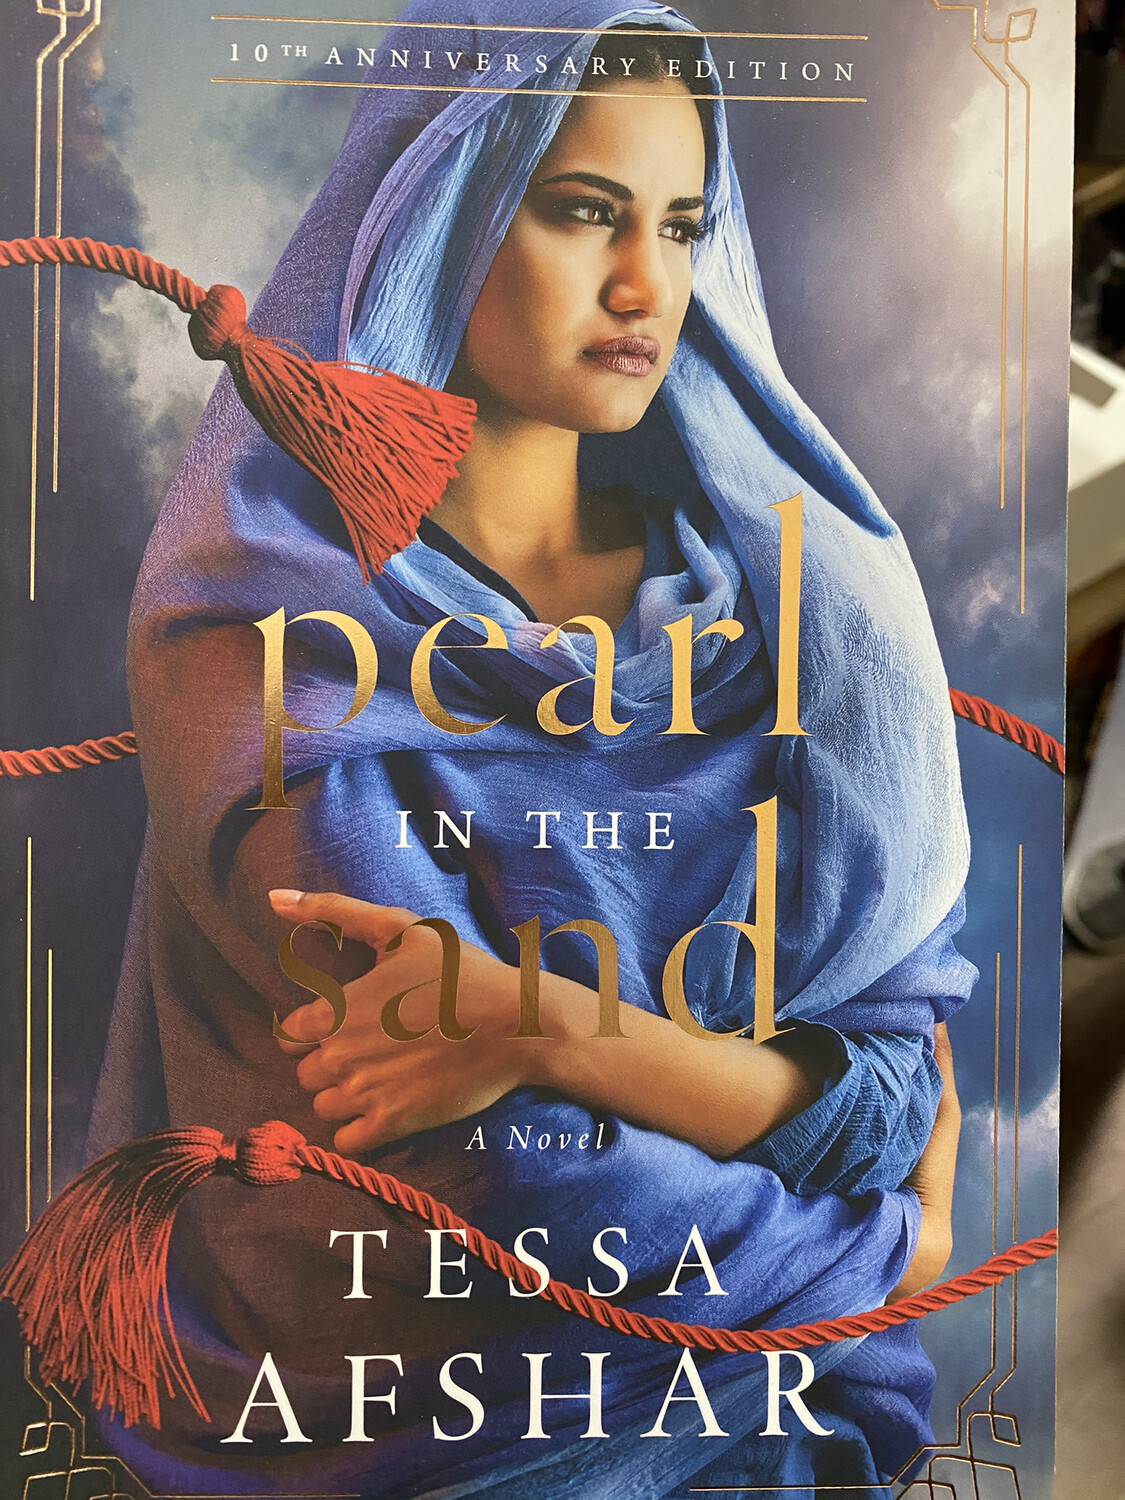 AFSHAR, Pearl In The Sand